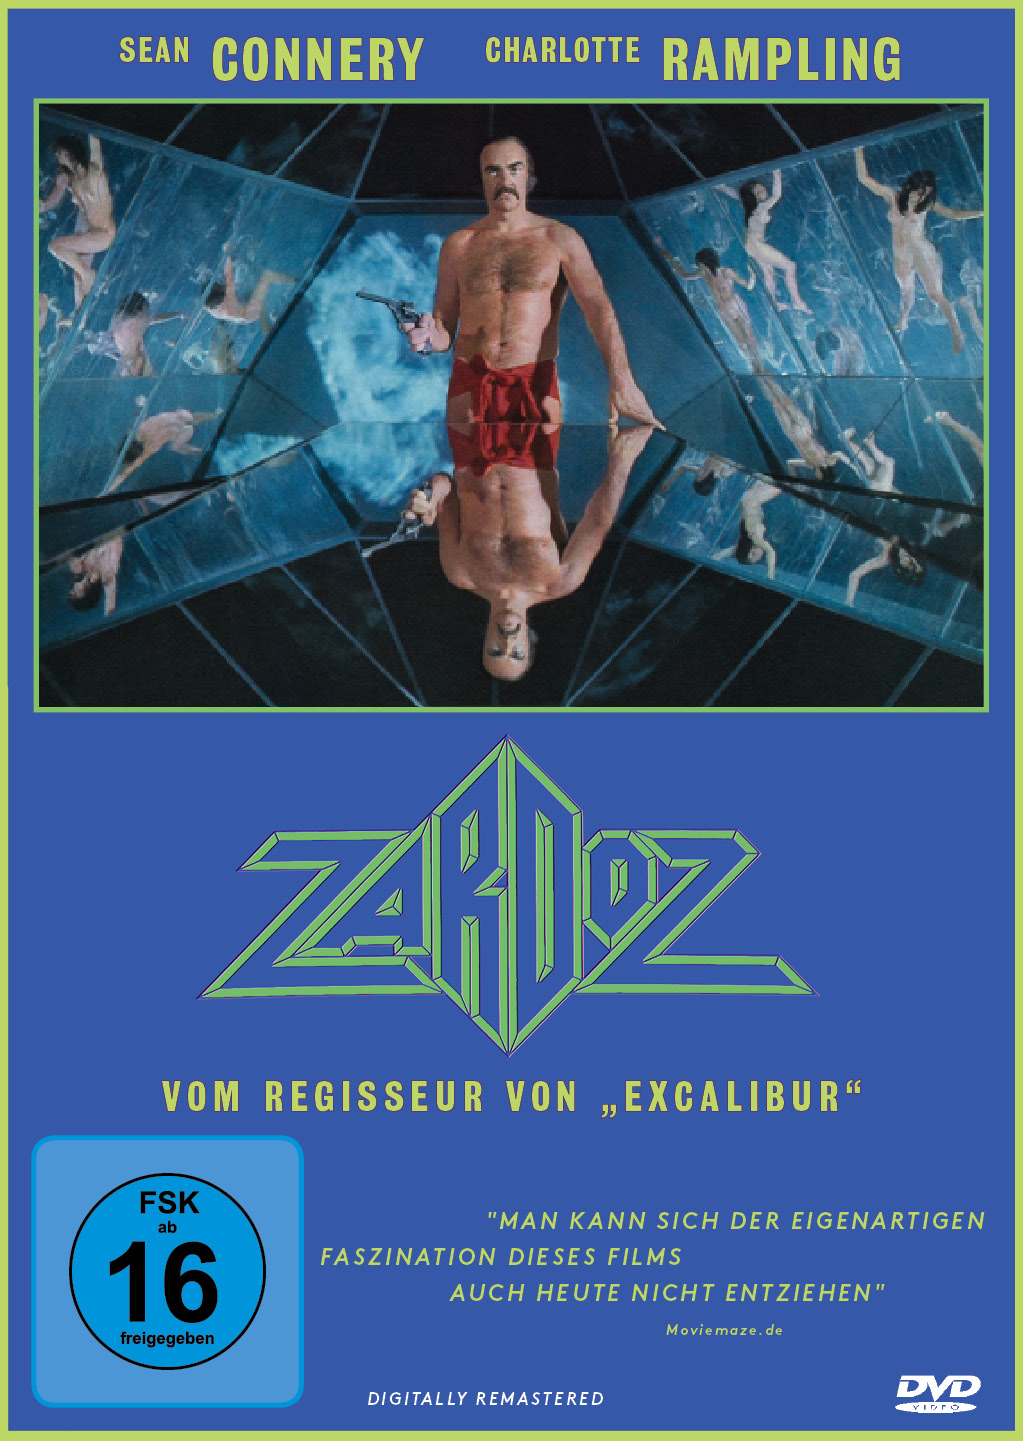 DVD-Cover: Zardoz